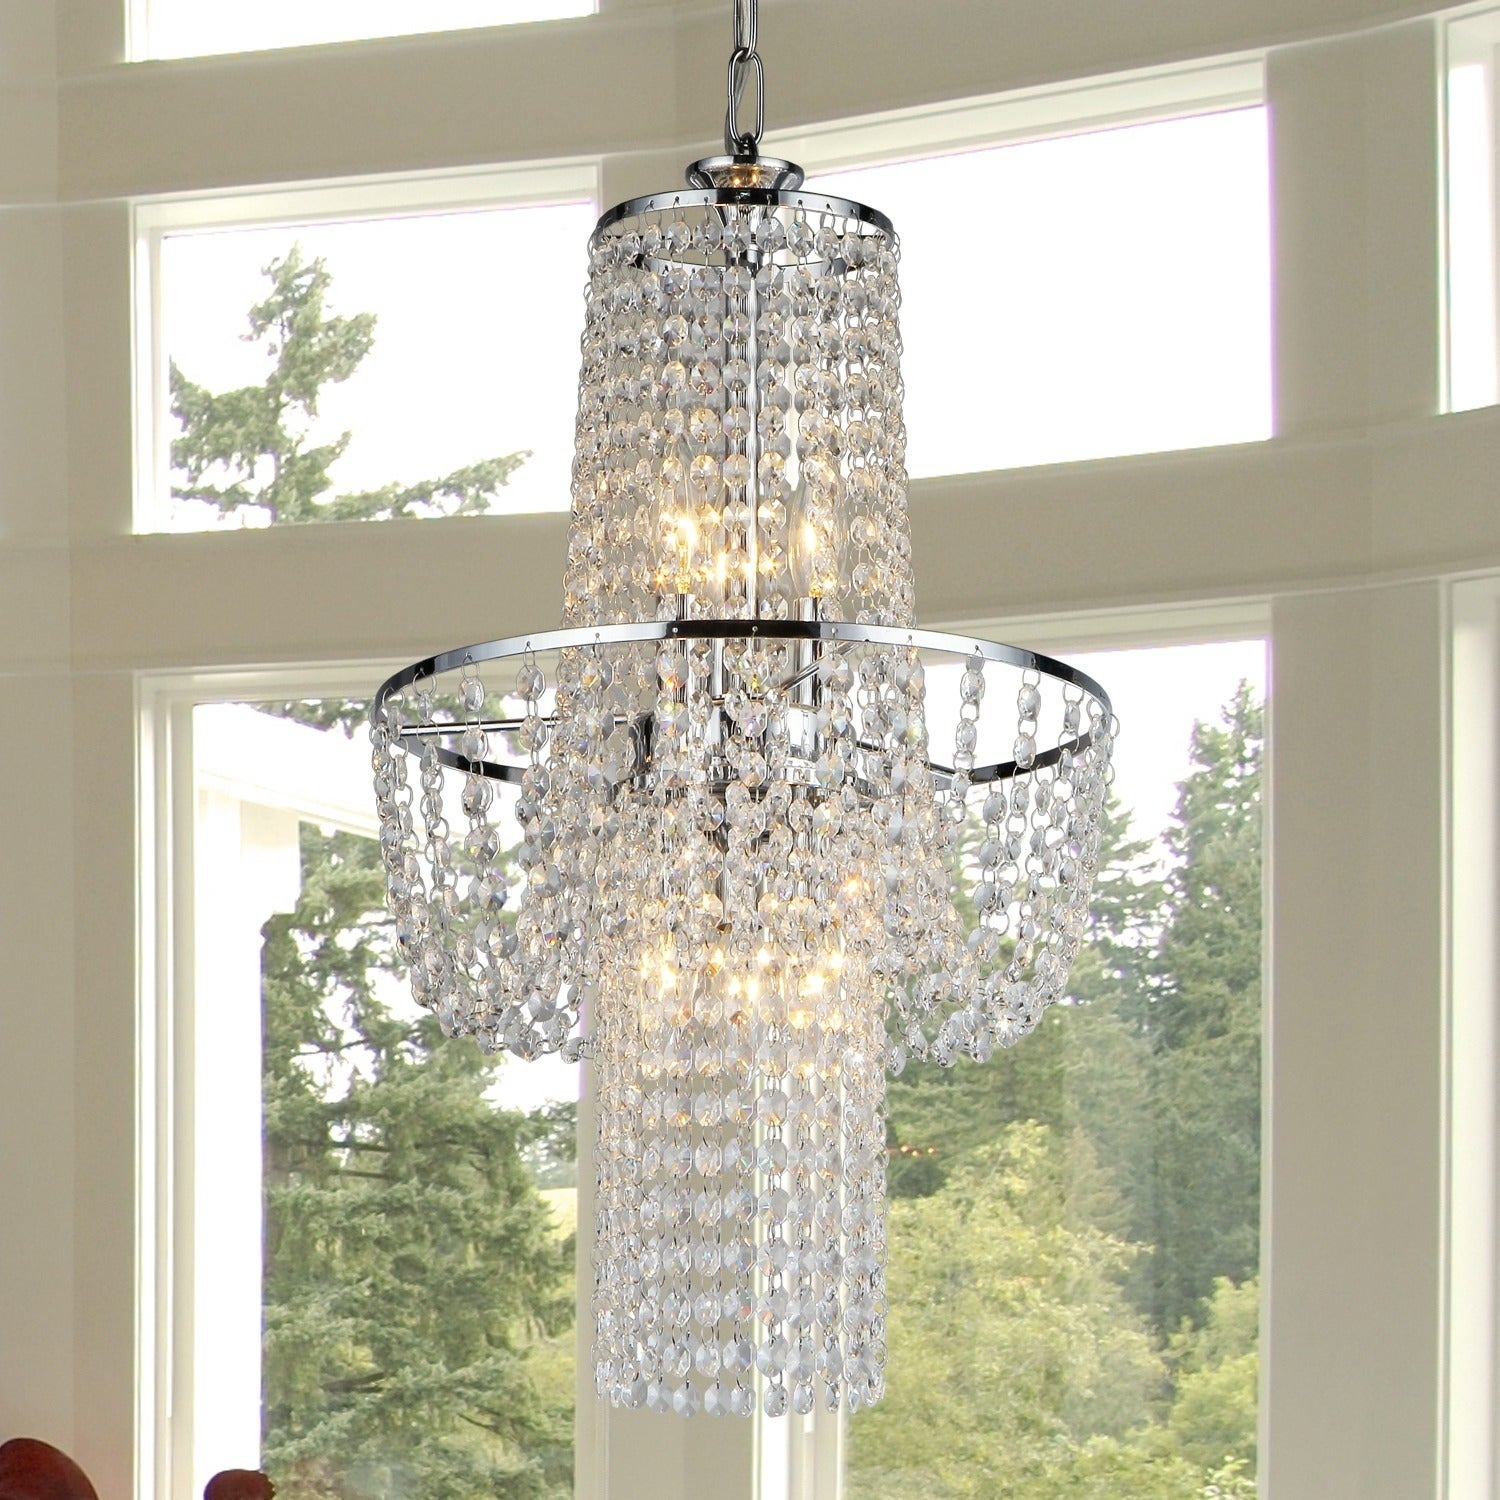 Charlotte crystal chandelier free shipping today overstock charlotte crystal chandelier free shipping today overstock 14980854 arubaitofo Image collections